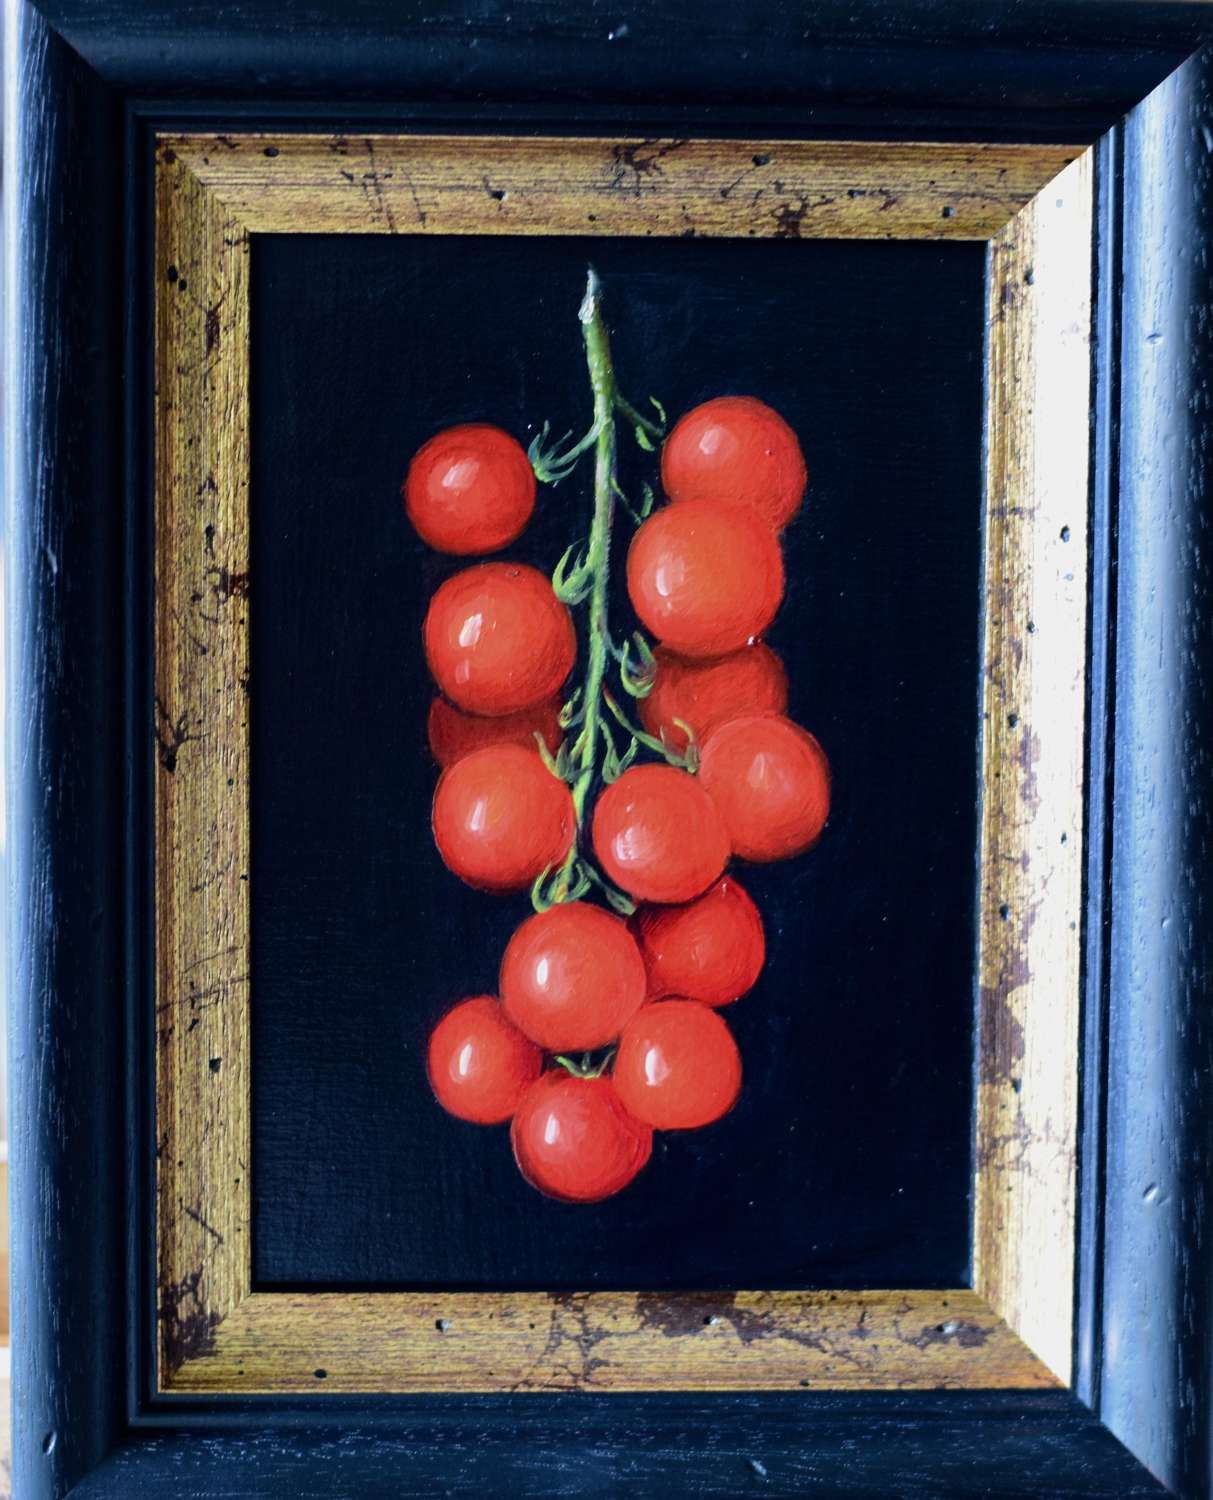 Tress of tomatoes